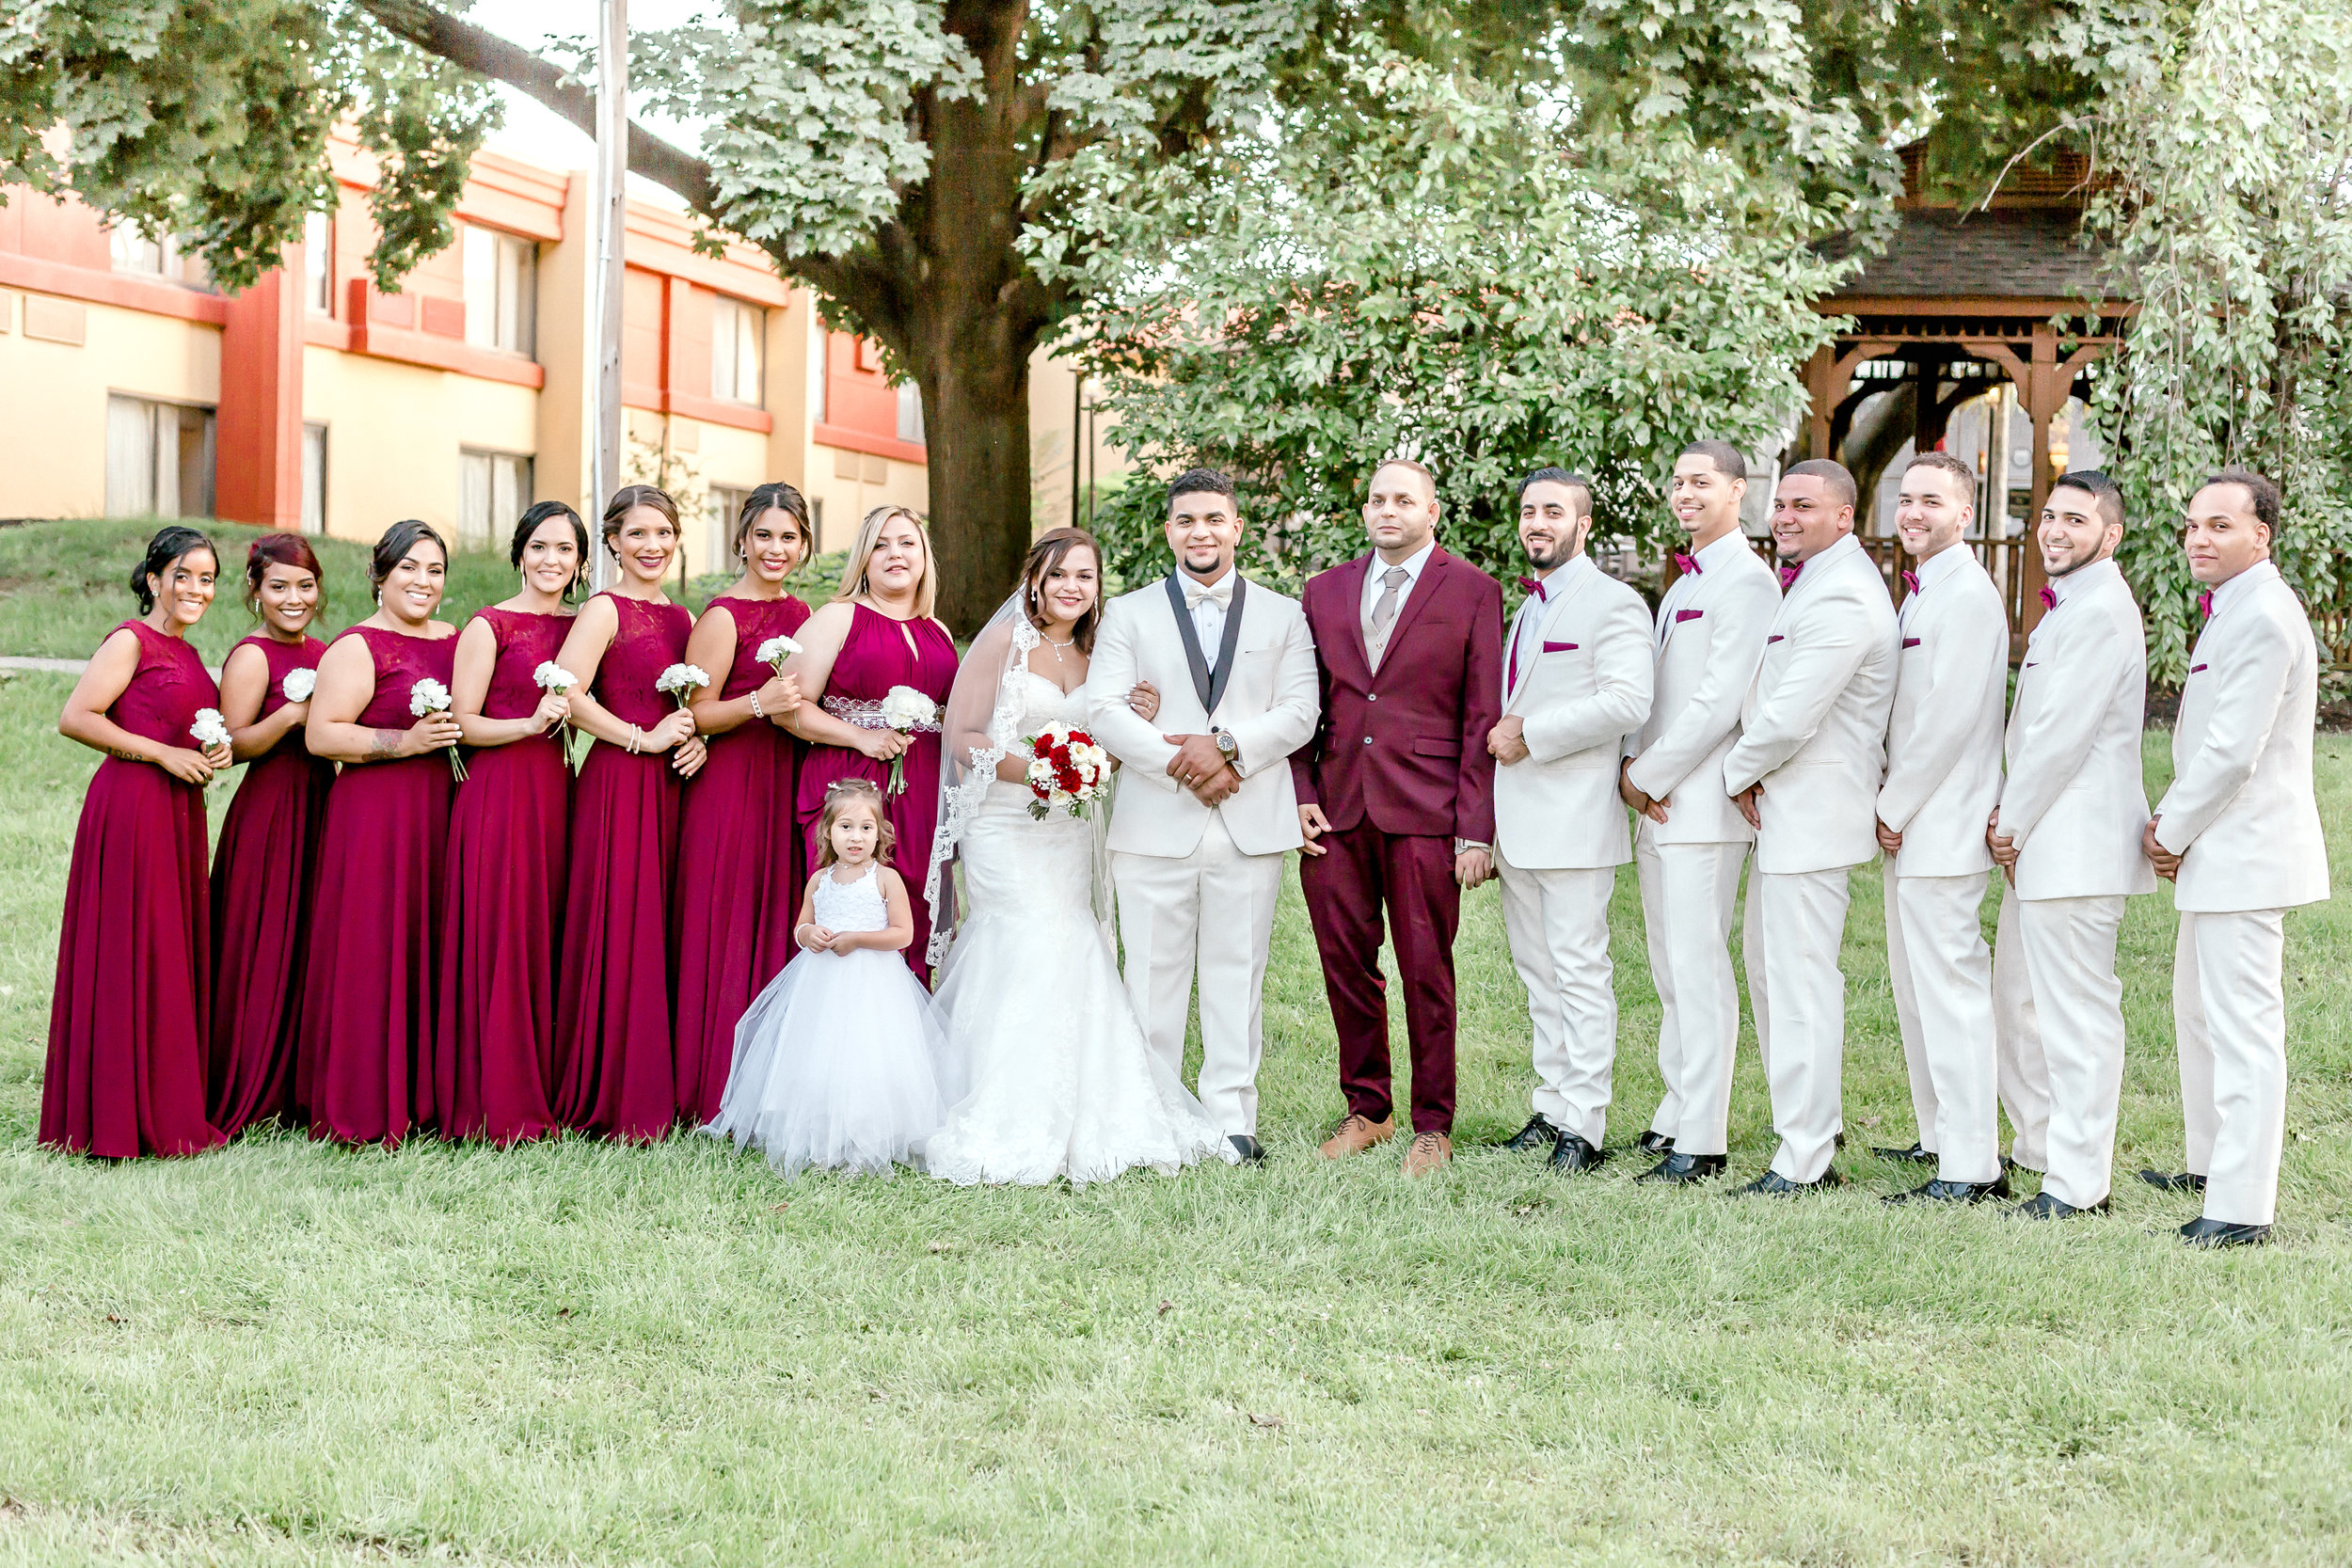 Crowne Plaza Hotel Reading Pennsylvania burgandy and gold  Wedding Lytle Photo Co (1 of 1)-4.jpg